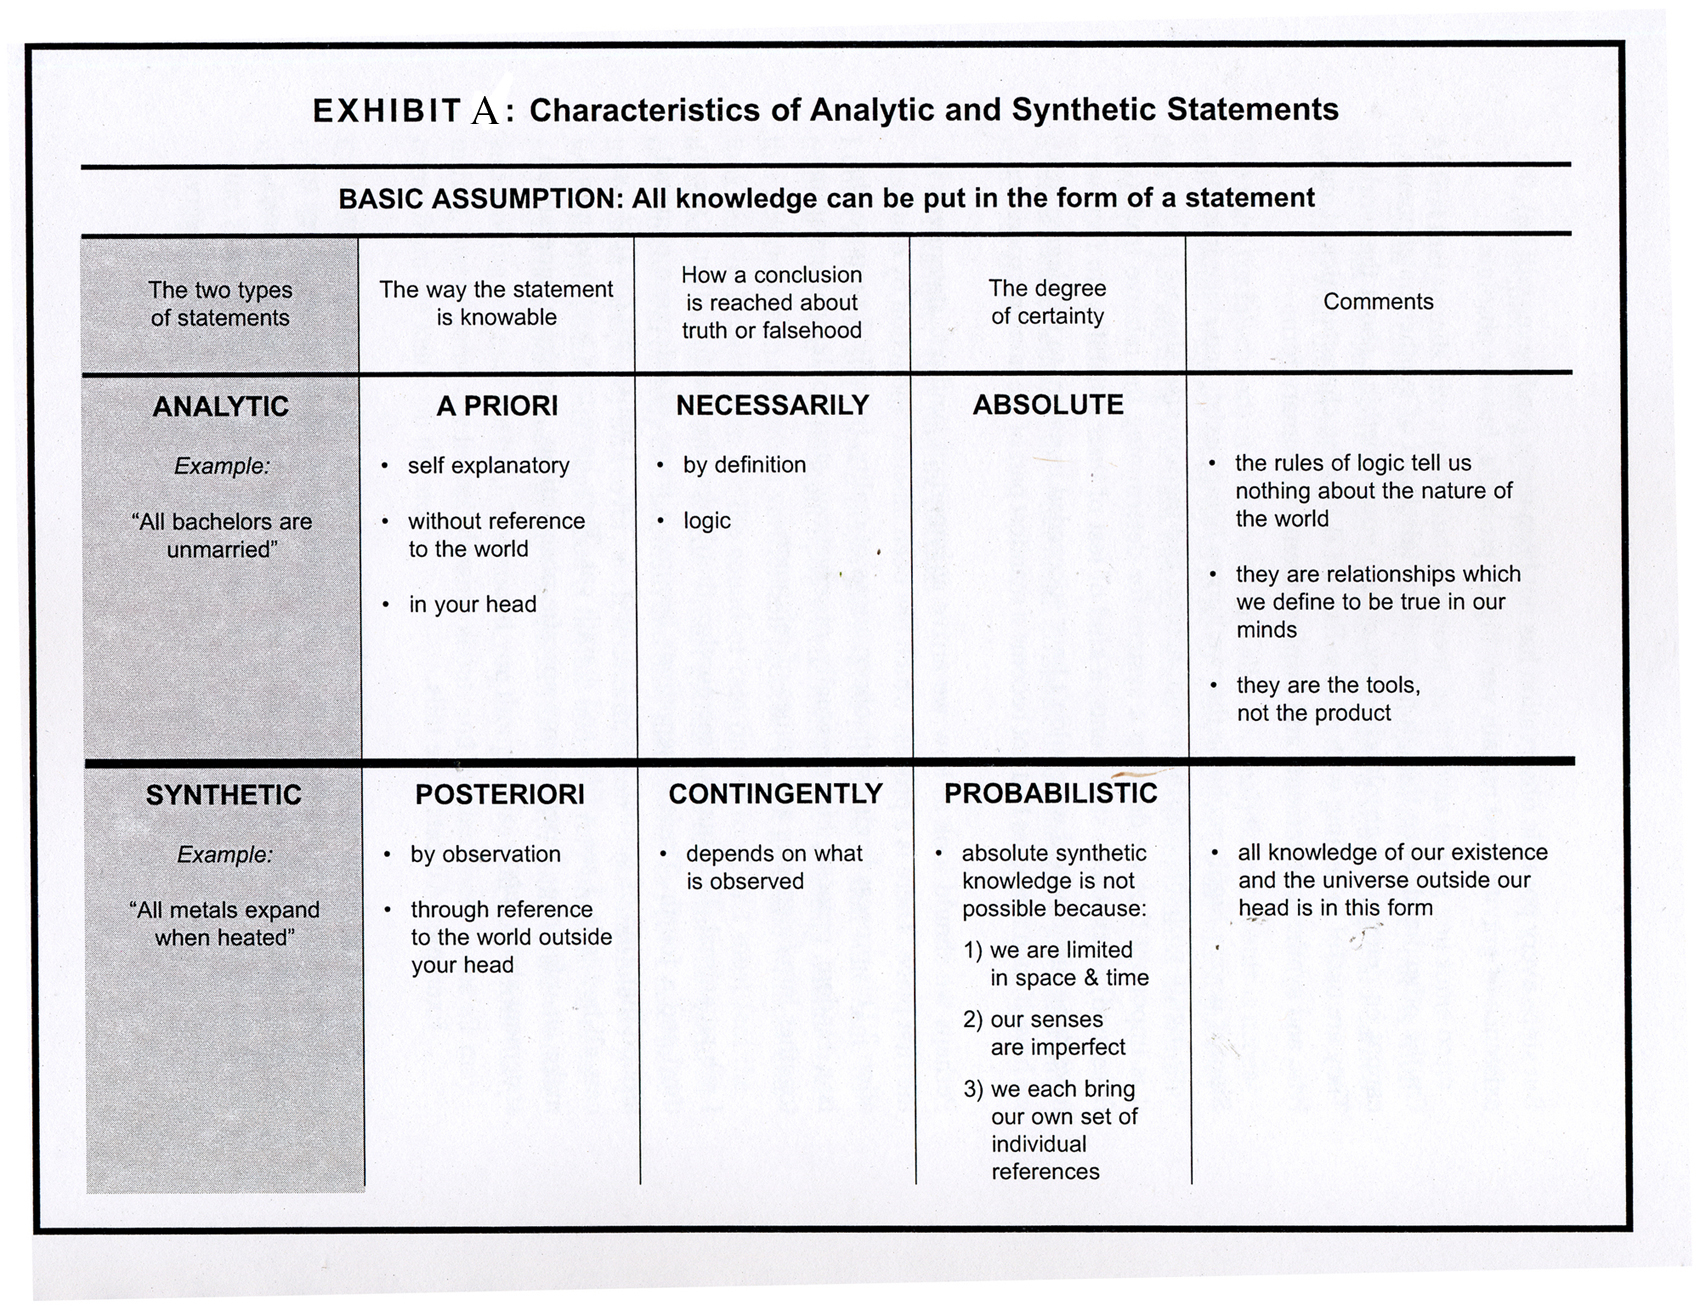 analytic vs synthetic statements com click